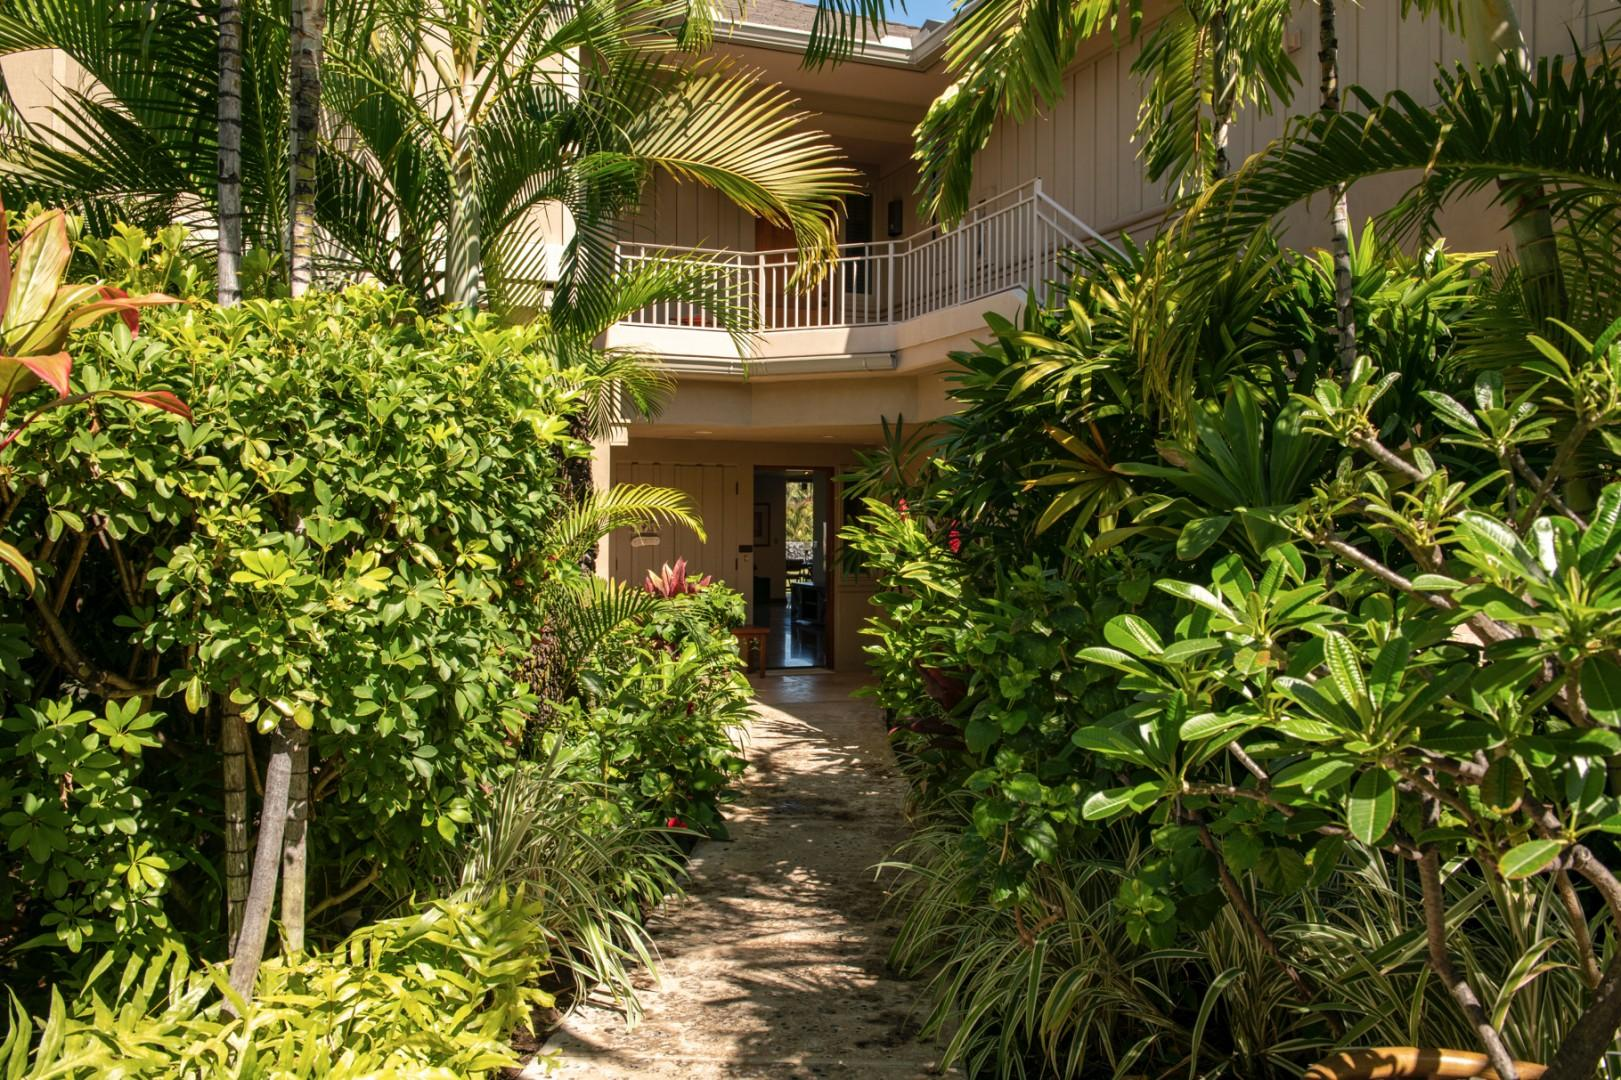 Private tropically landscaped entrance path to villa.